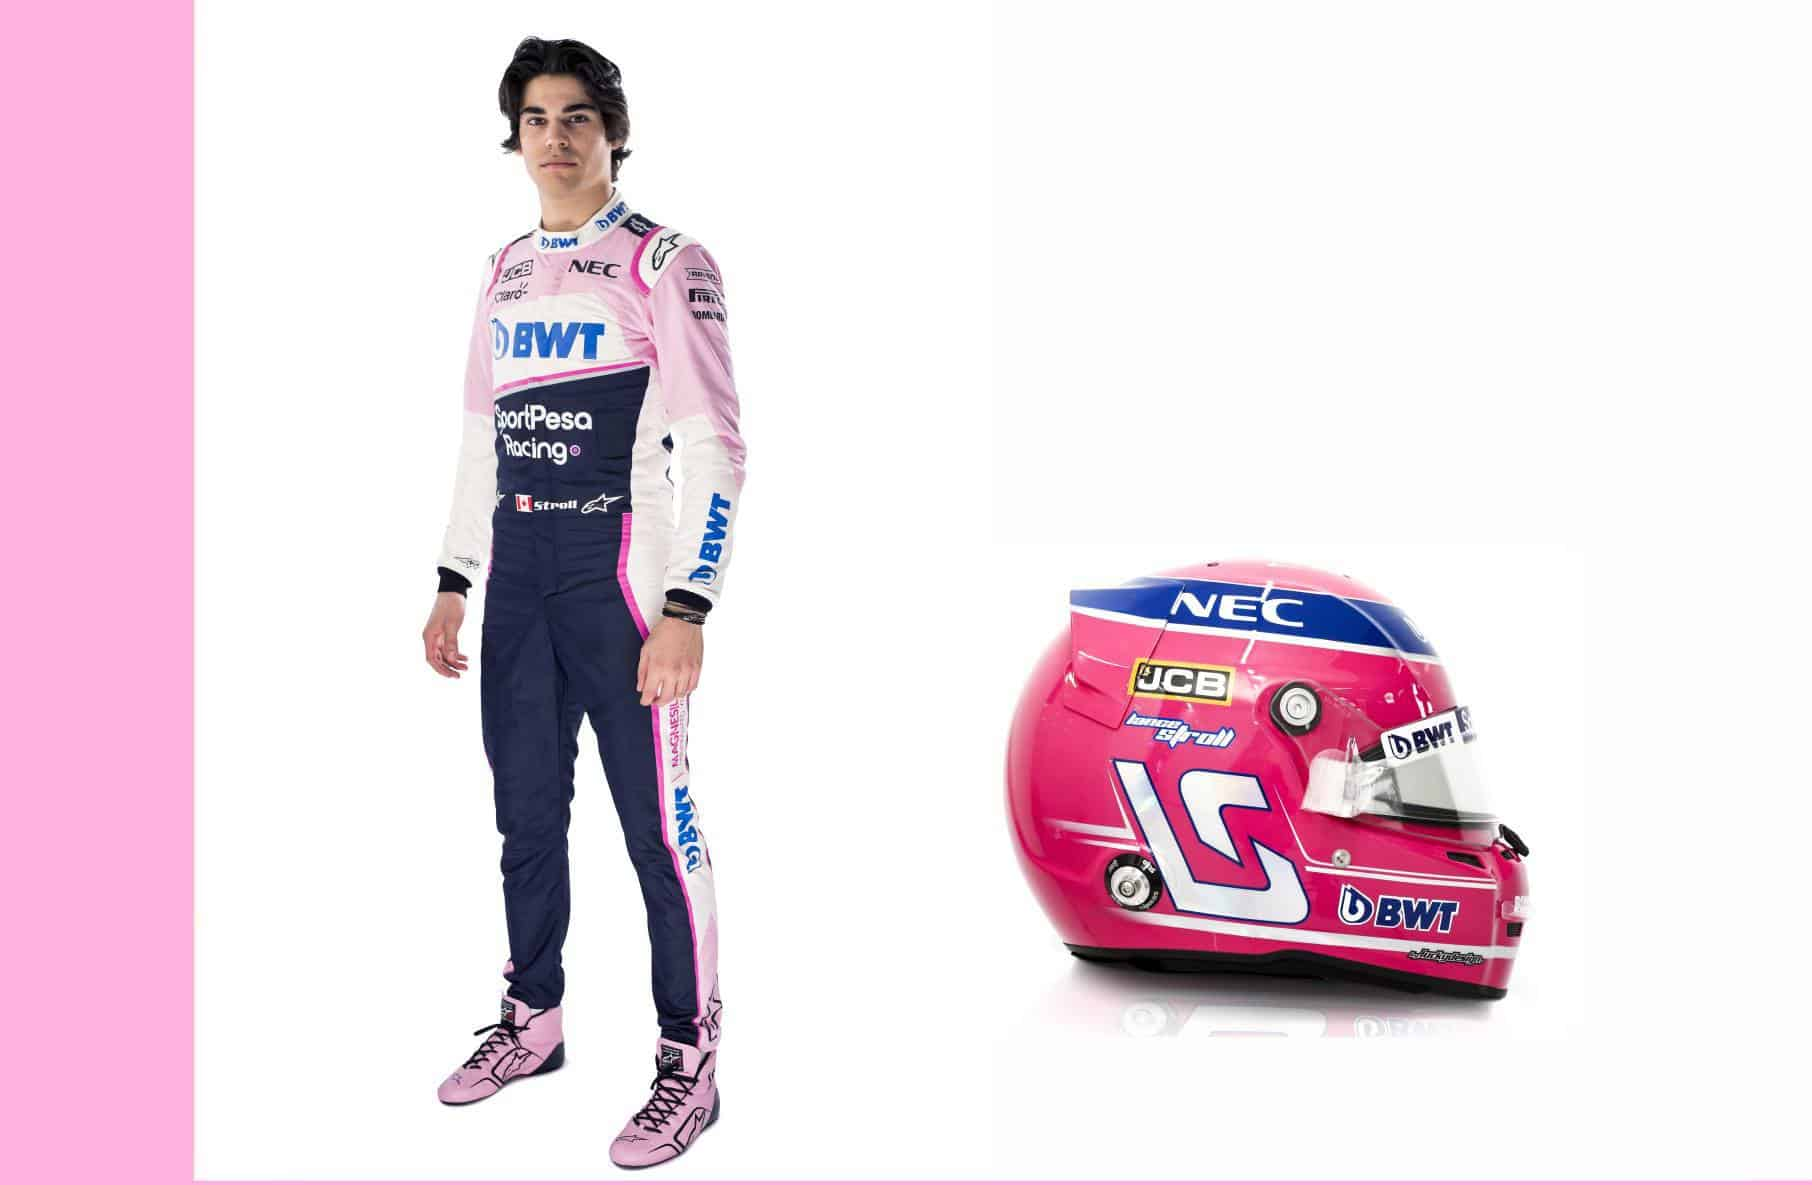 Lance Stroll Racing Point driver-portrait-and-helmet-F1-2019 edited by MAXF1net